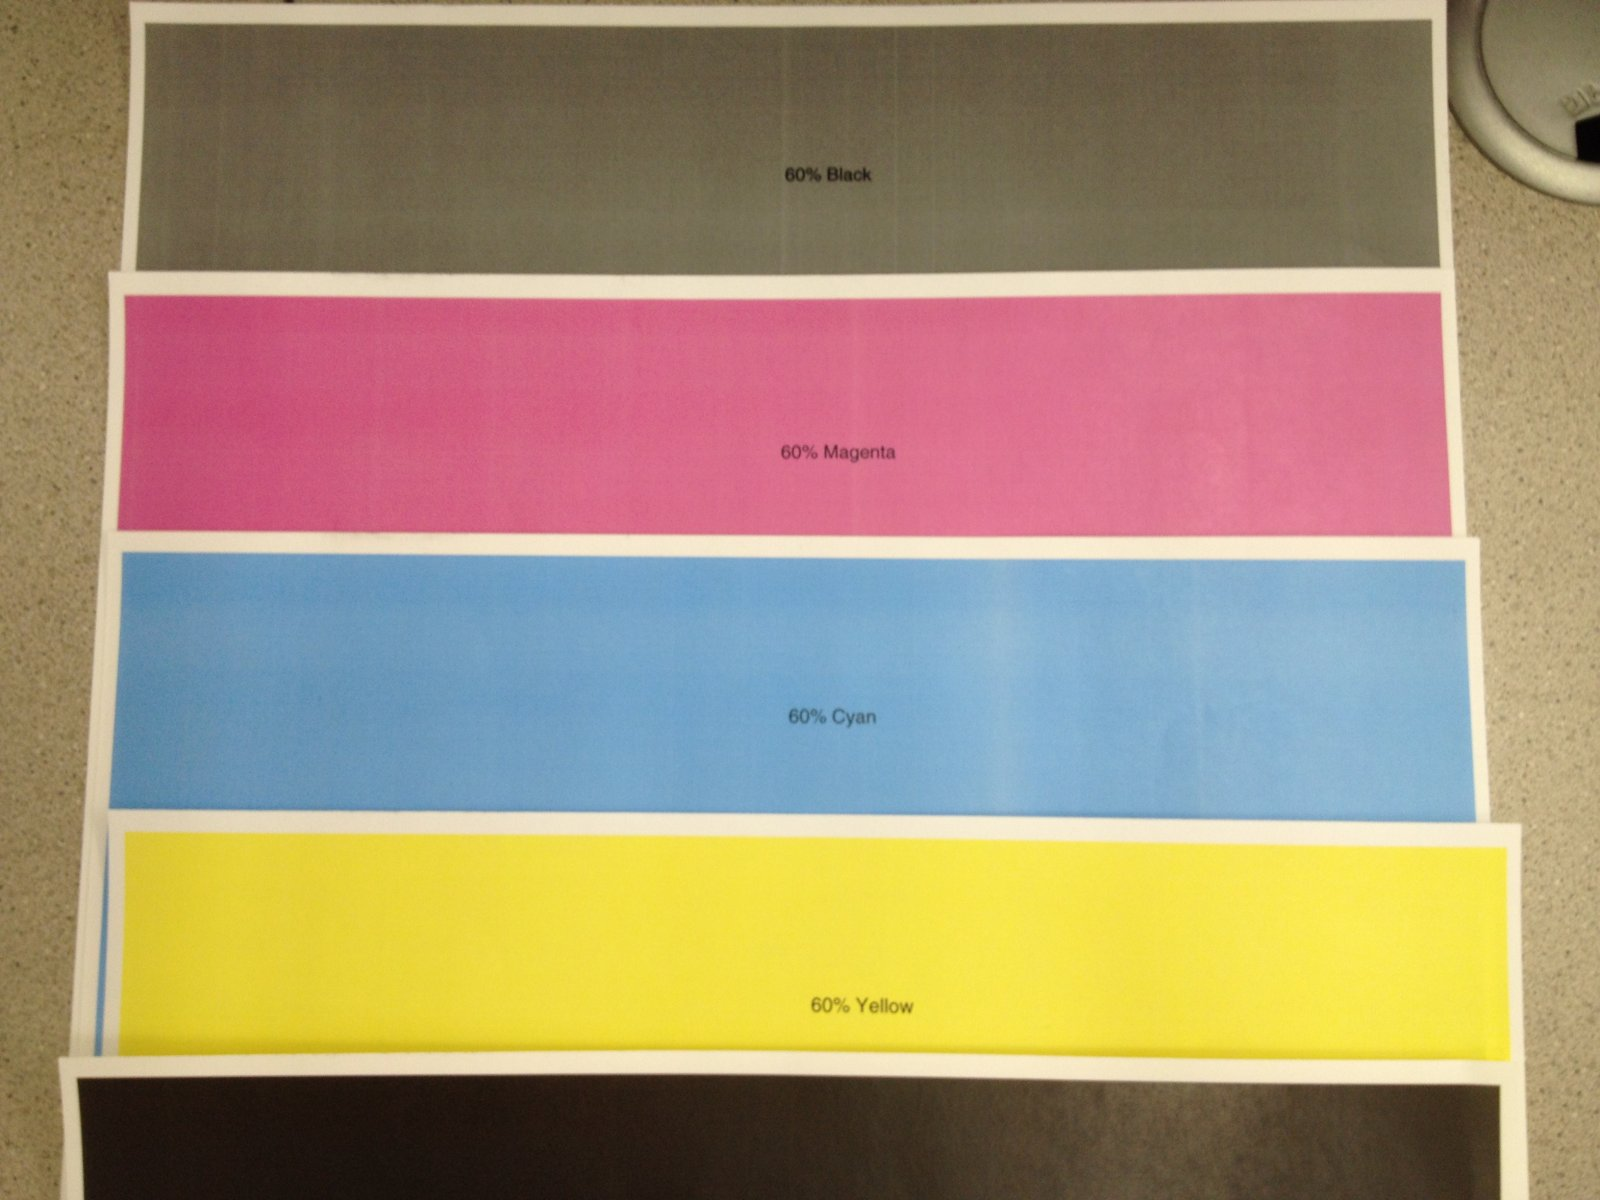 Xerox Docucolor 242 Streaks on all colors | Color Printing Forum